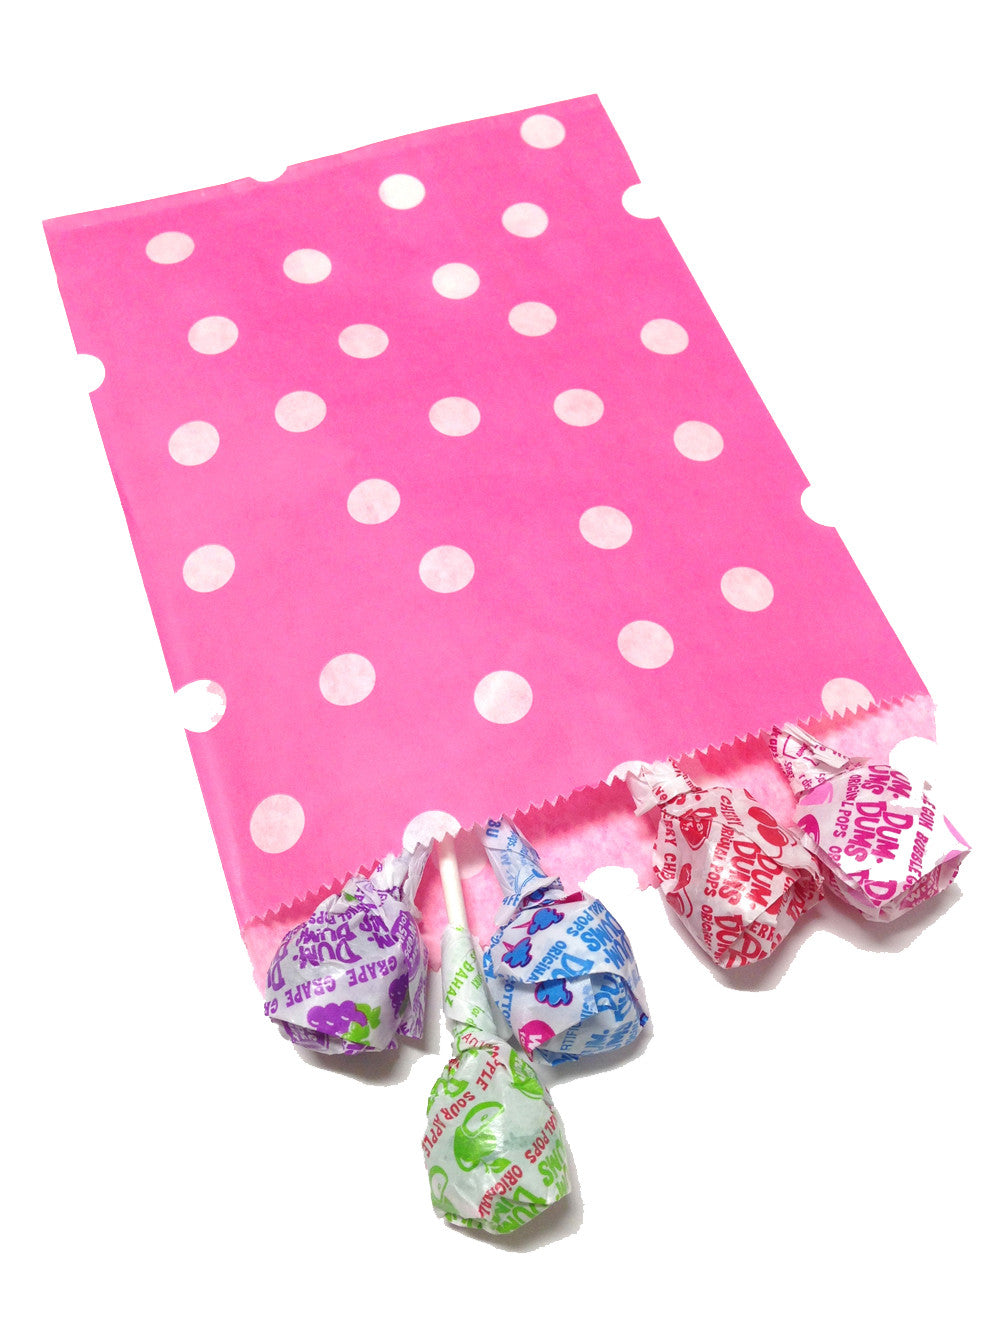 Hot Pink Polka Dots 20pc Paper Favor Bags – LANTERNS AND MORE